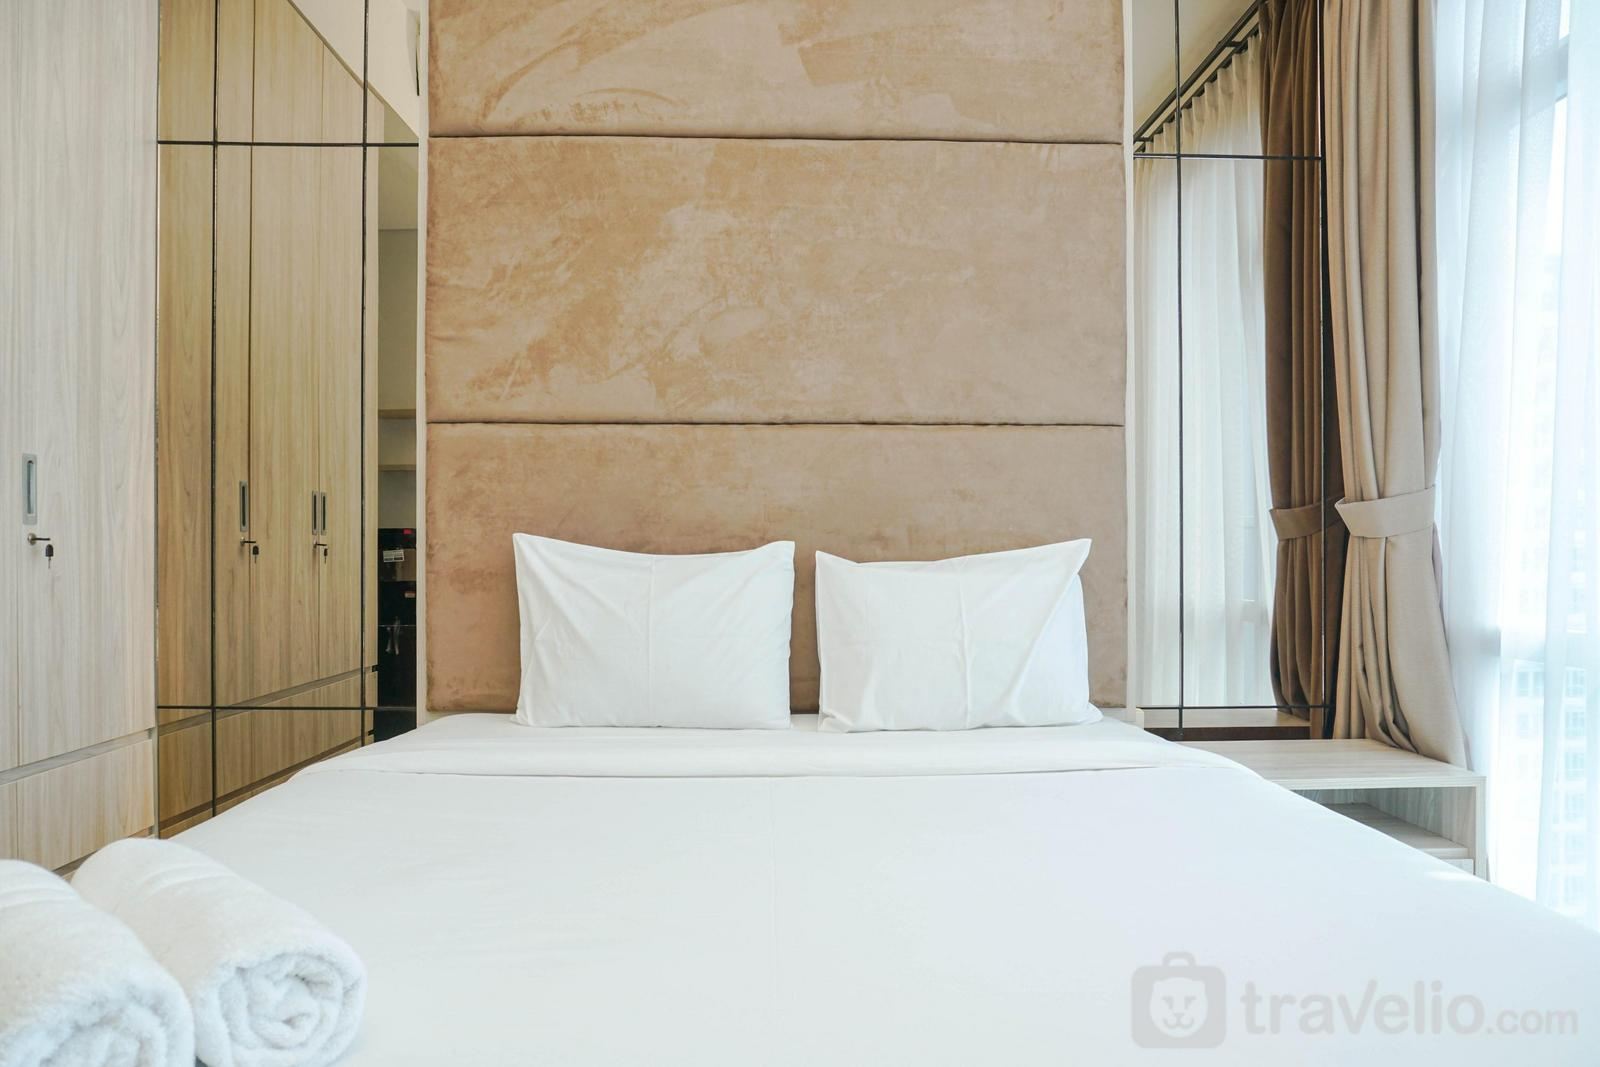 Apartemen Puri Mansion - Relaxing and Stylish Studio Puri Mansion Apartment By Travelio